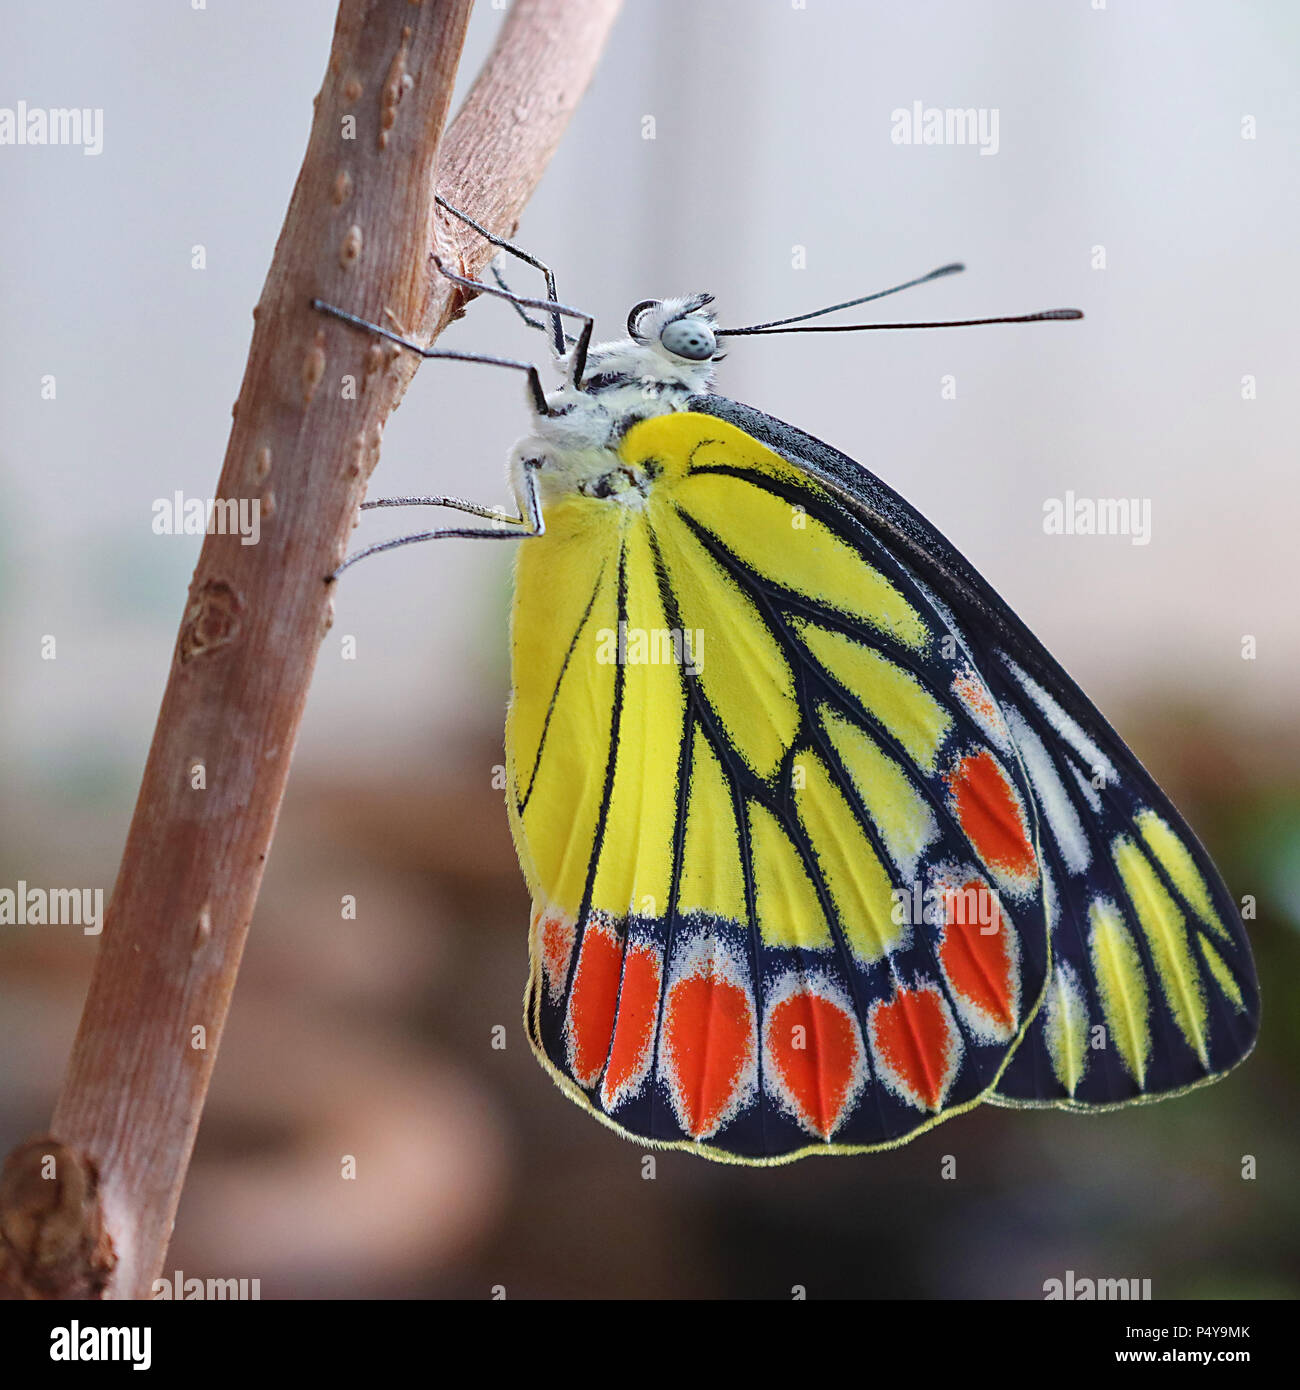 Common Jezebel butterfly waiting to spread its wings - Stock Image